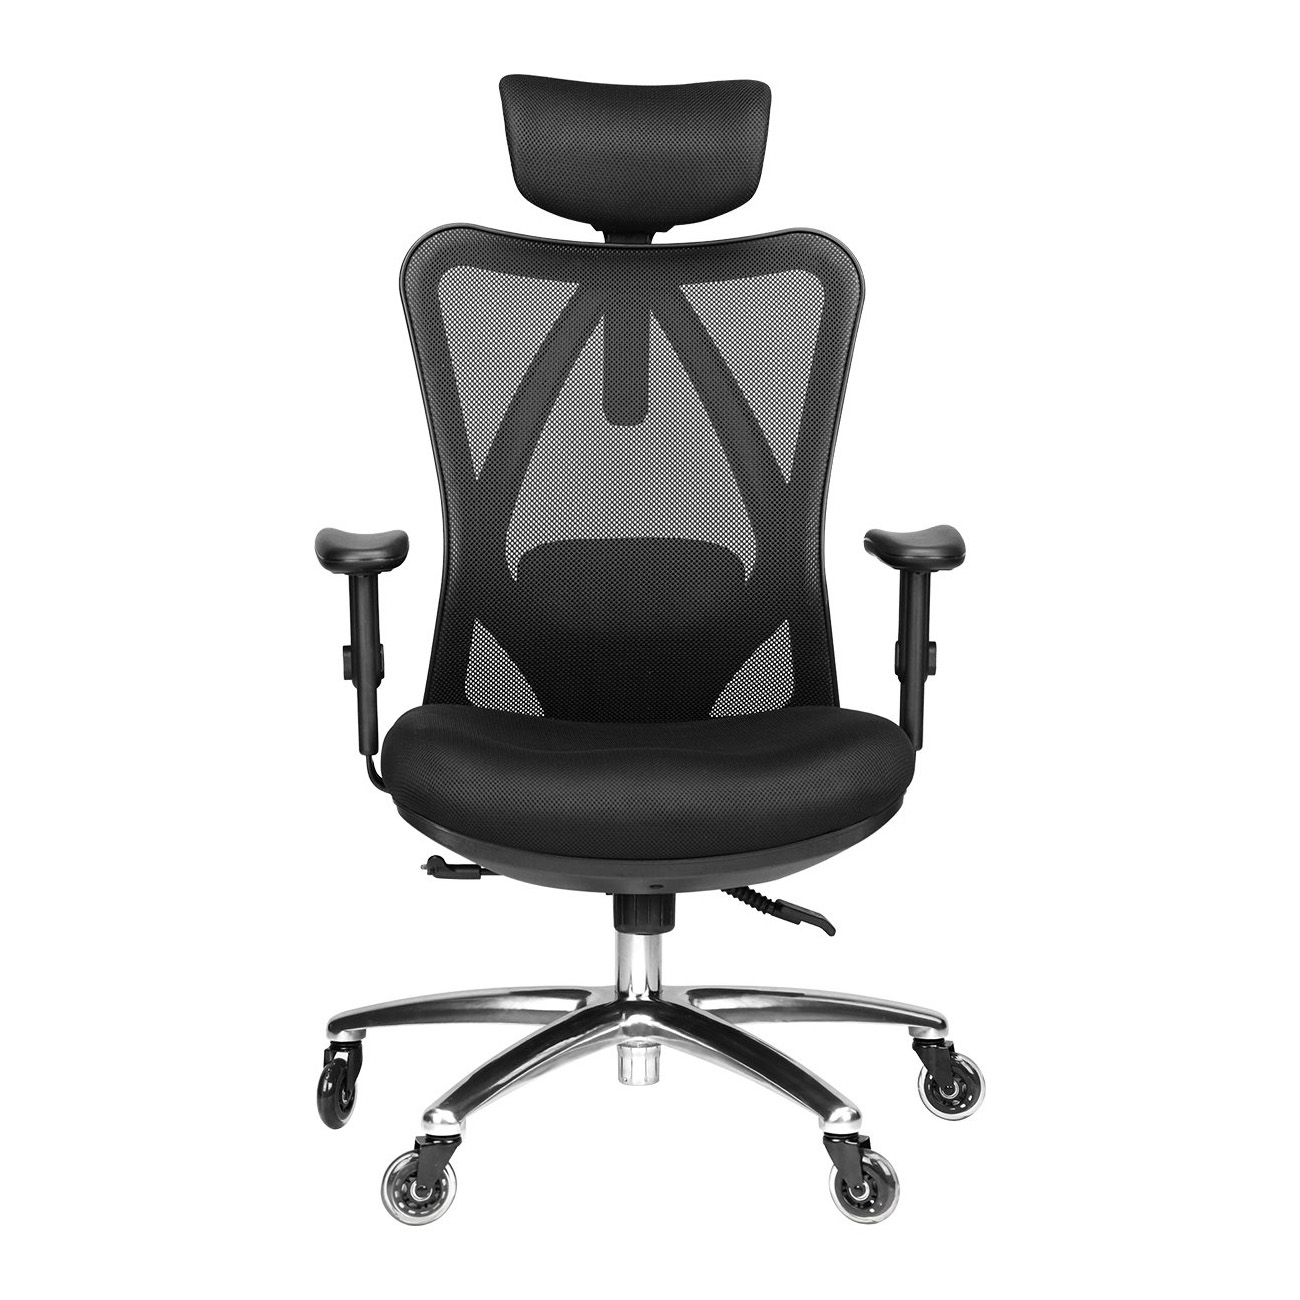 Duramont Ergonomic Adjustable Office Chair With Lumbar Support And Rollerblade Wheels High Back With Breathable Mesh